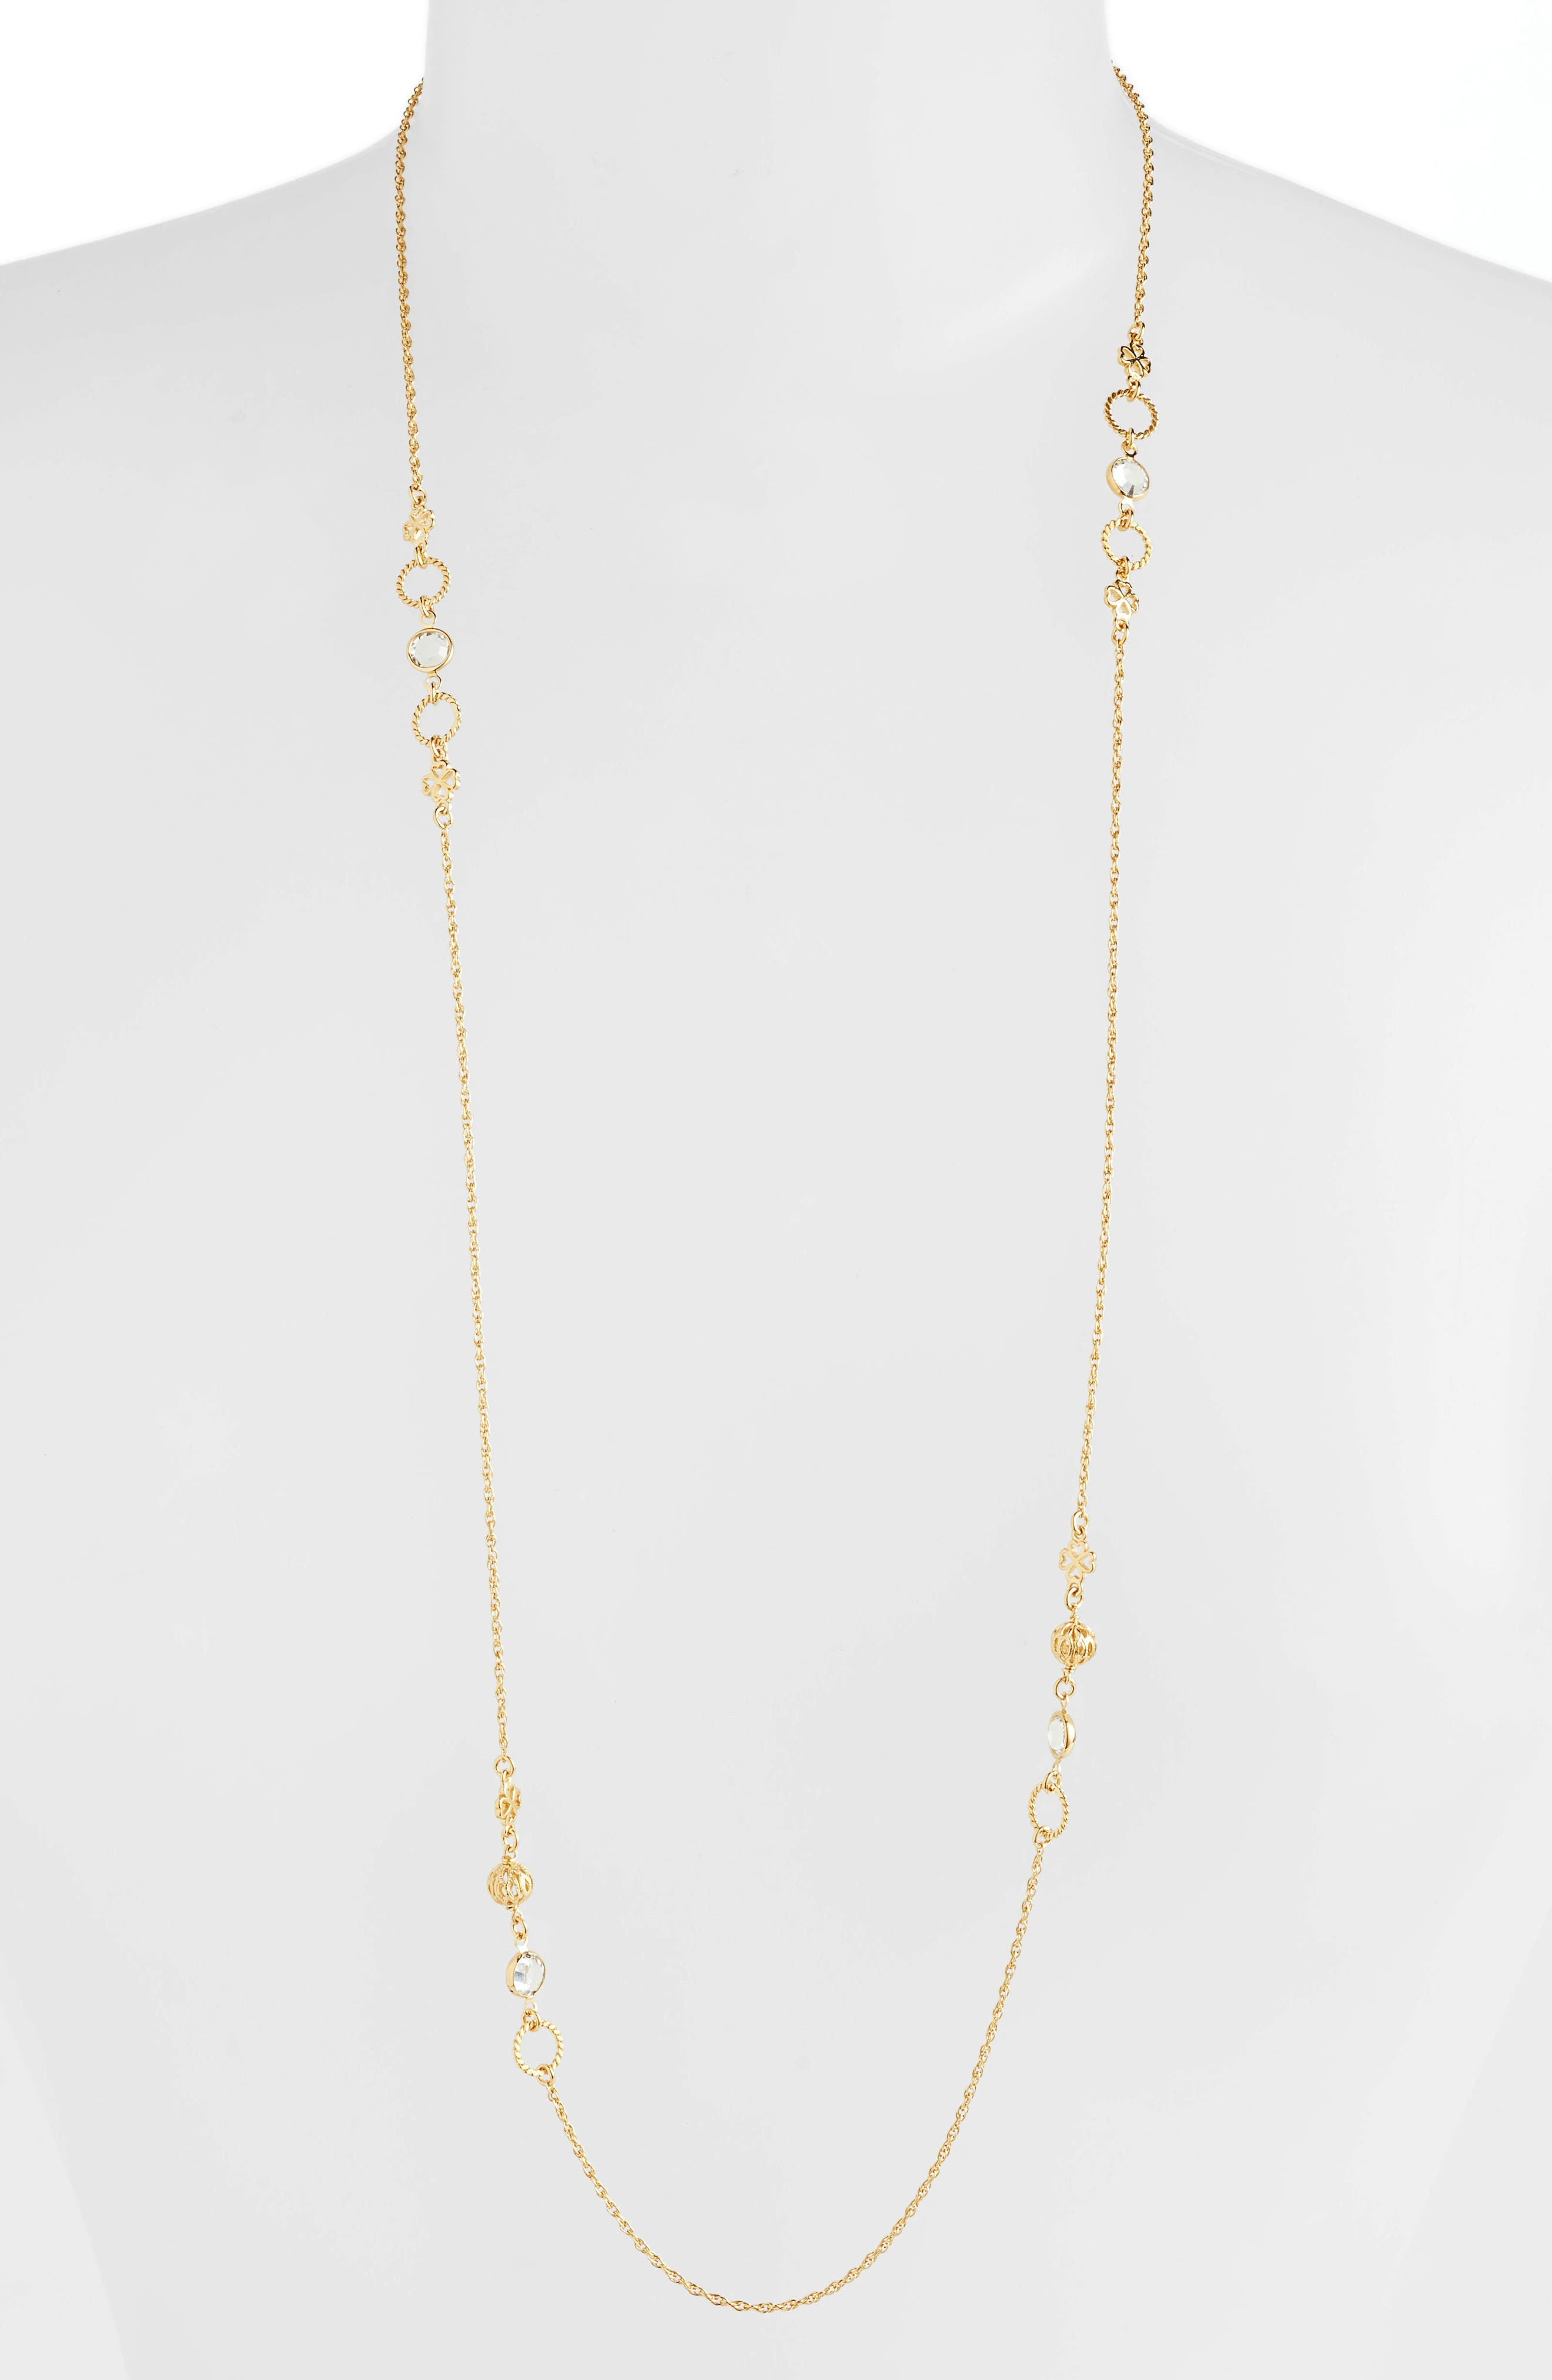 Tresse Long Lariat Necklace,                             Main thumbnail 1, color,                             YELLOW GOLD